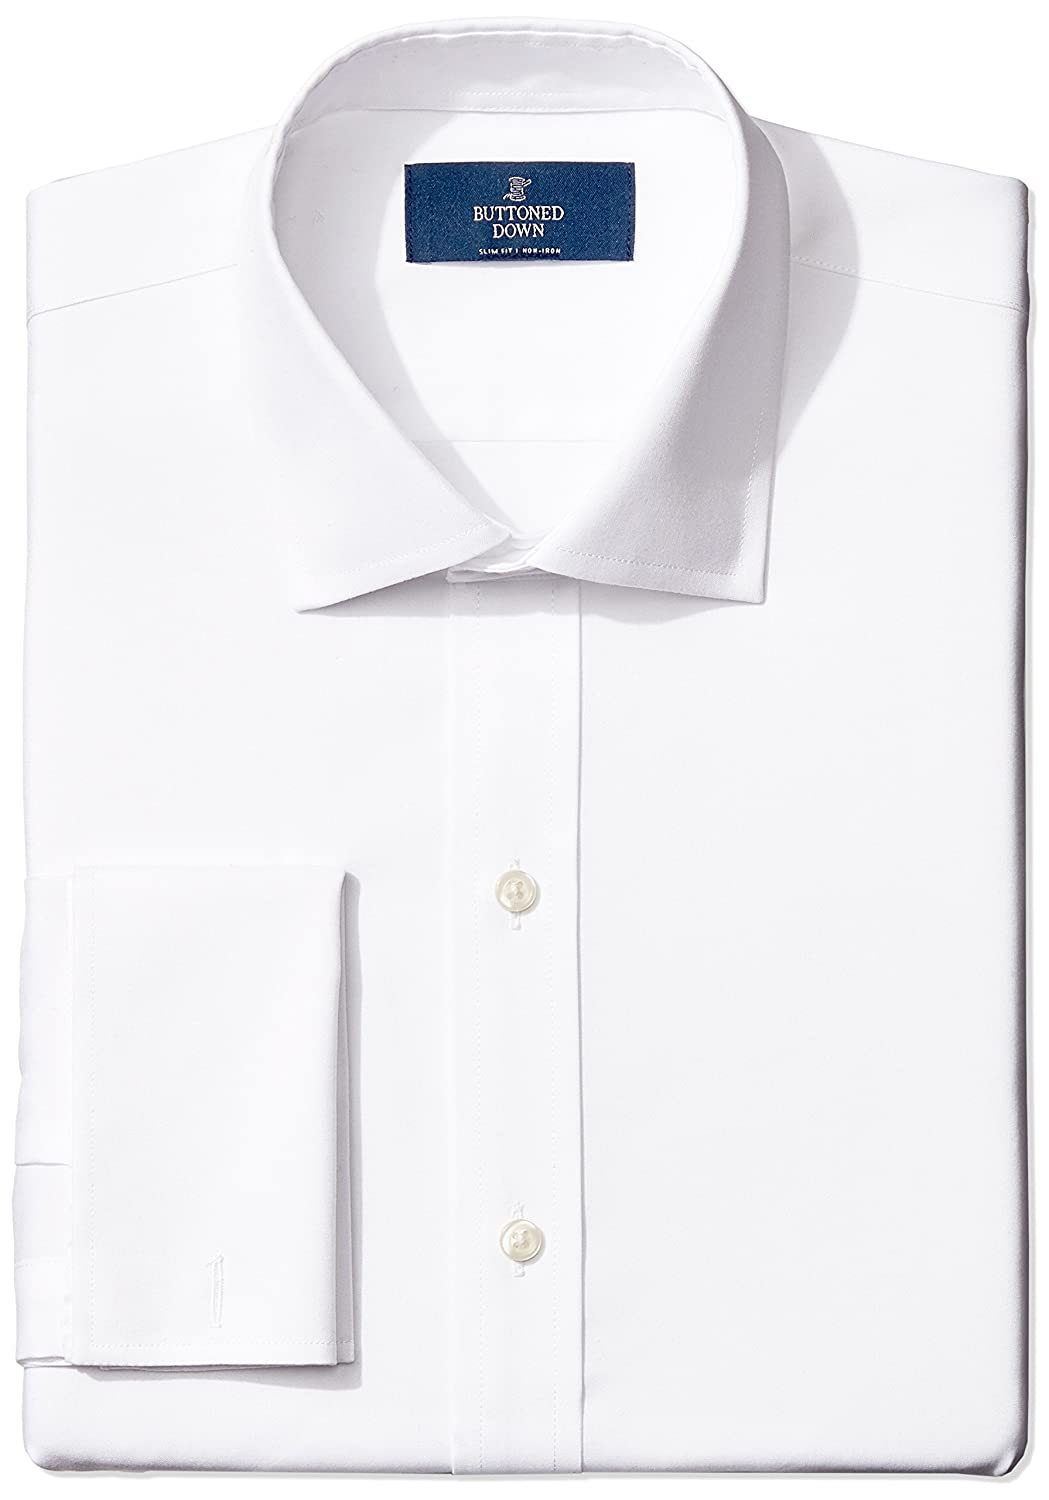 Buttoned Down Men's Slim Fit French Cuff Spread-Collar Non-Iron Dress Shirt MBD30020